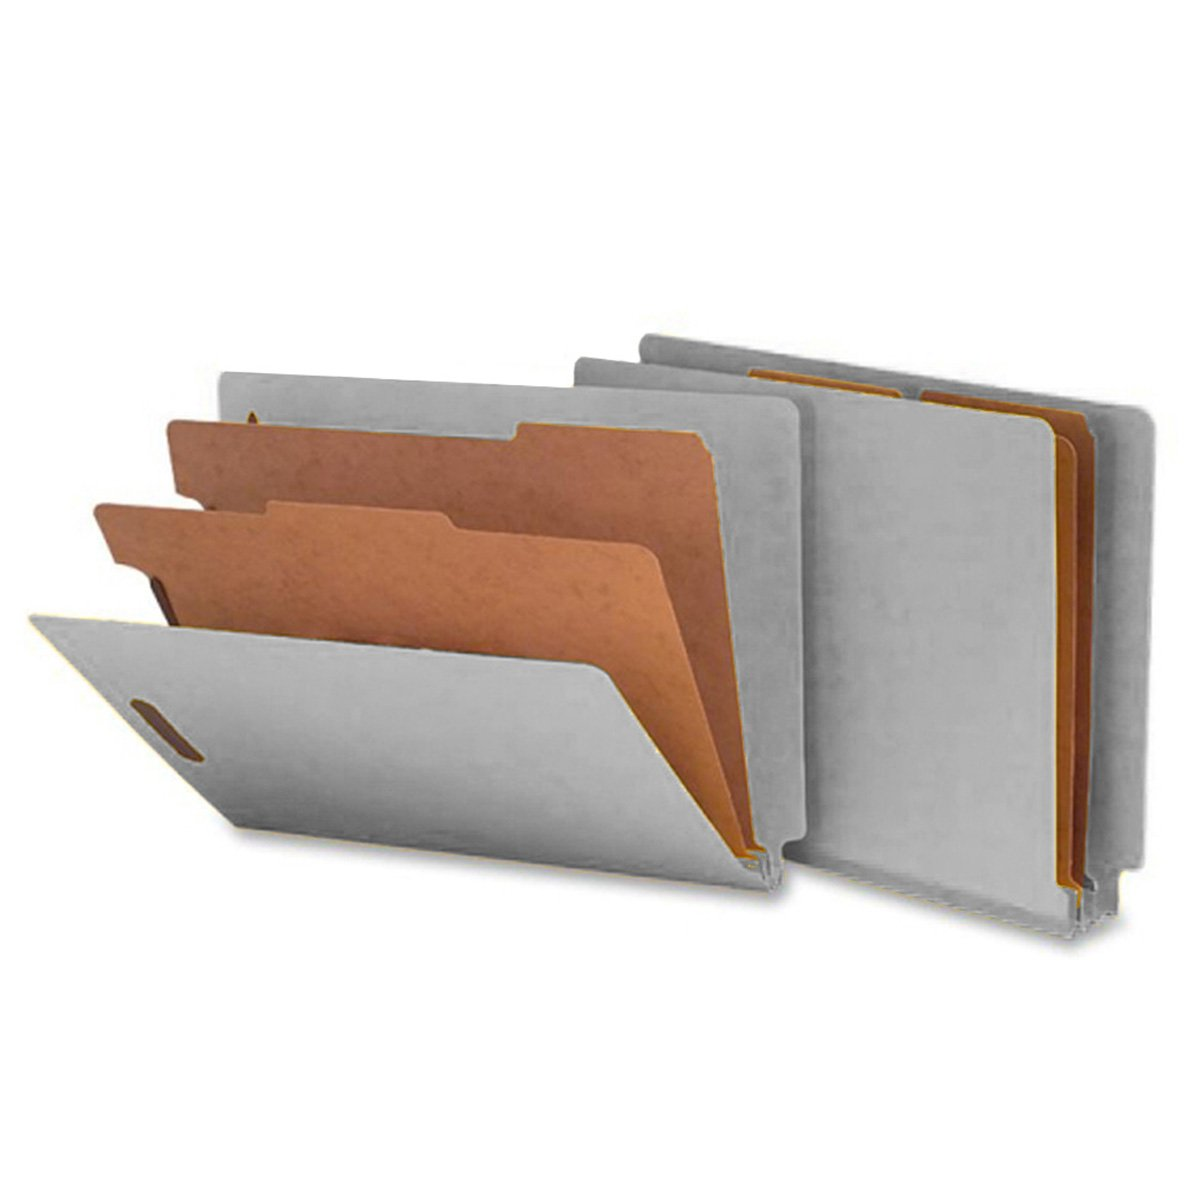 SMEAD ETC400-2D-GY End Tab Folder, FAS #1 and #3, 25Pt Pressboard, 2 Dividers, 2'' Expansion, 12 1/4 x 9 1/2, Smead Gray (Pack of 10)